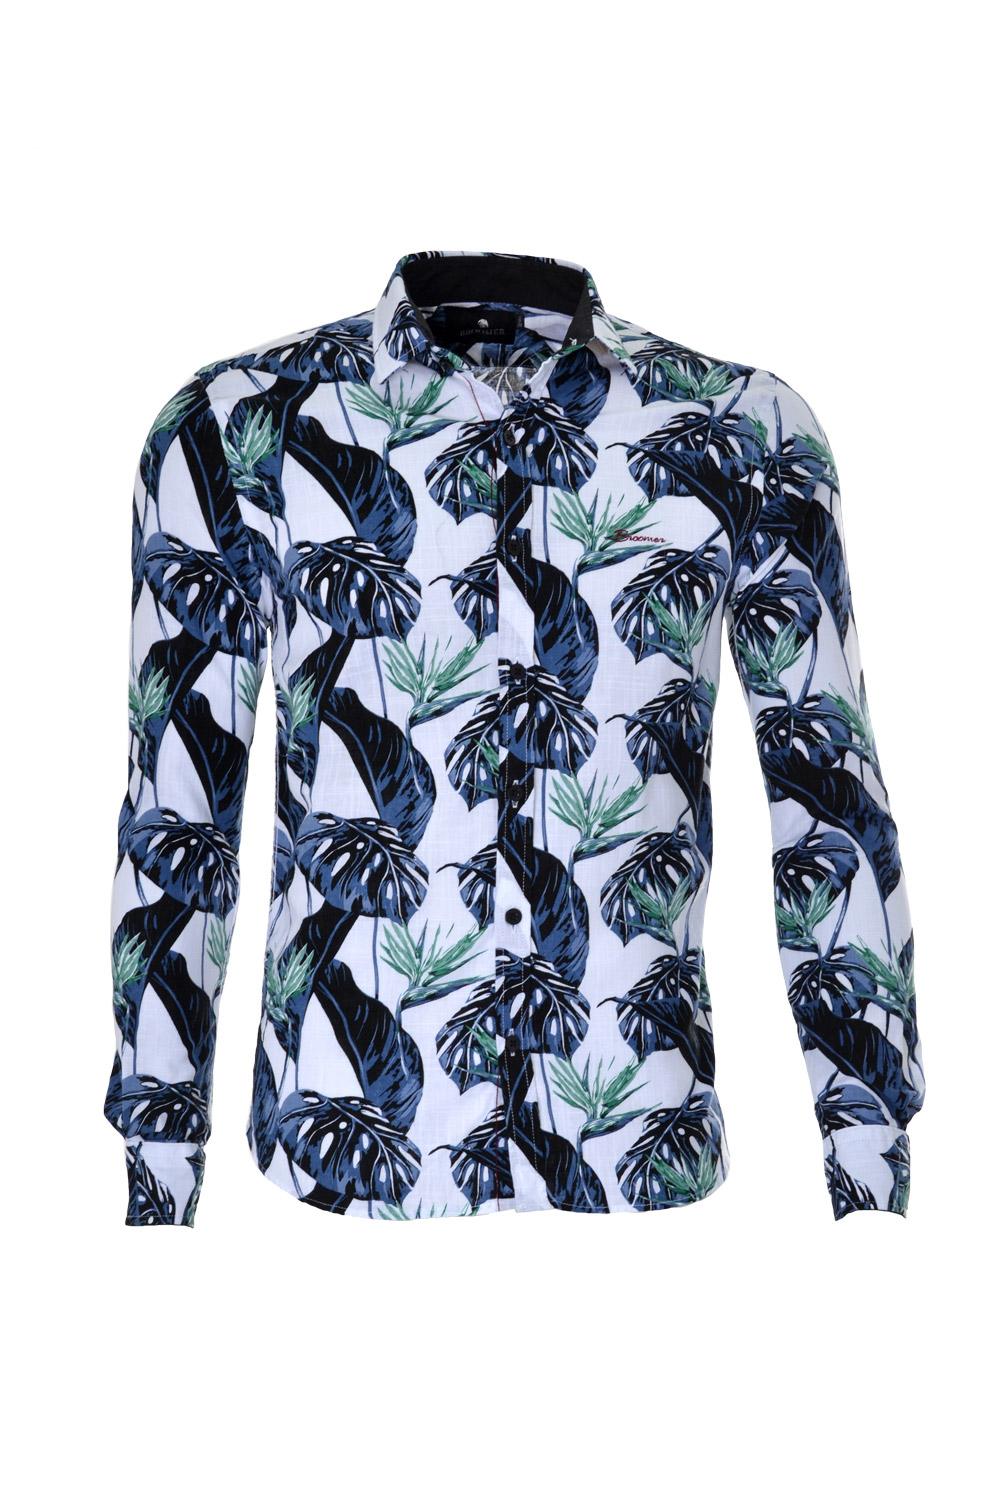 CAMISA ML BLUES SUPER SLIM ALGODAO TRENDY ESTAMPA VERDE CLARO